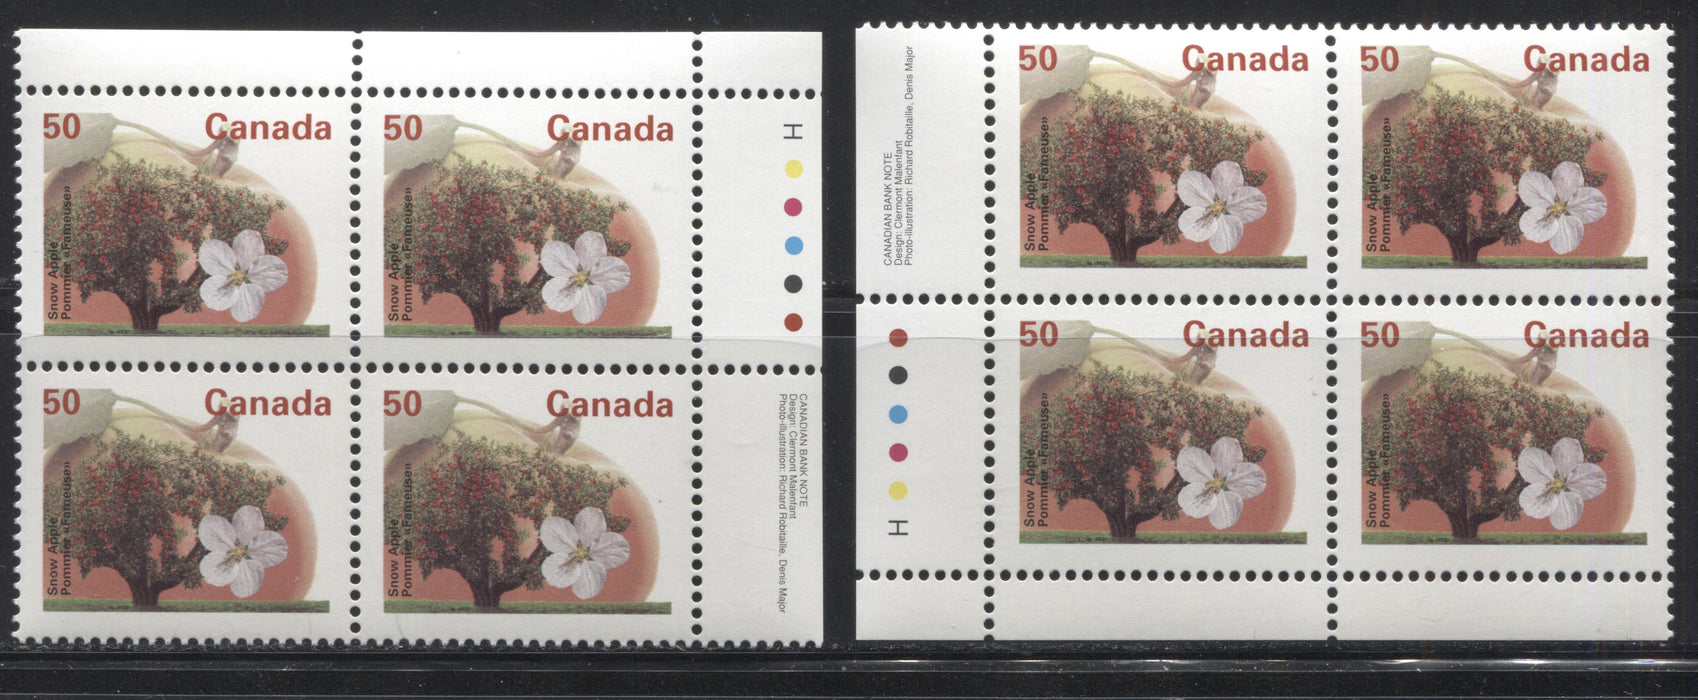 Canada #1365 50c Snow Apple, 1991-1998 Fruit & Flag Definitive Issue, VFNH UR & LL Inscription Block, Perf. 13.1 on DF/DF Harrison Paper